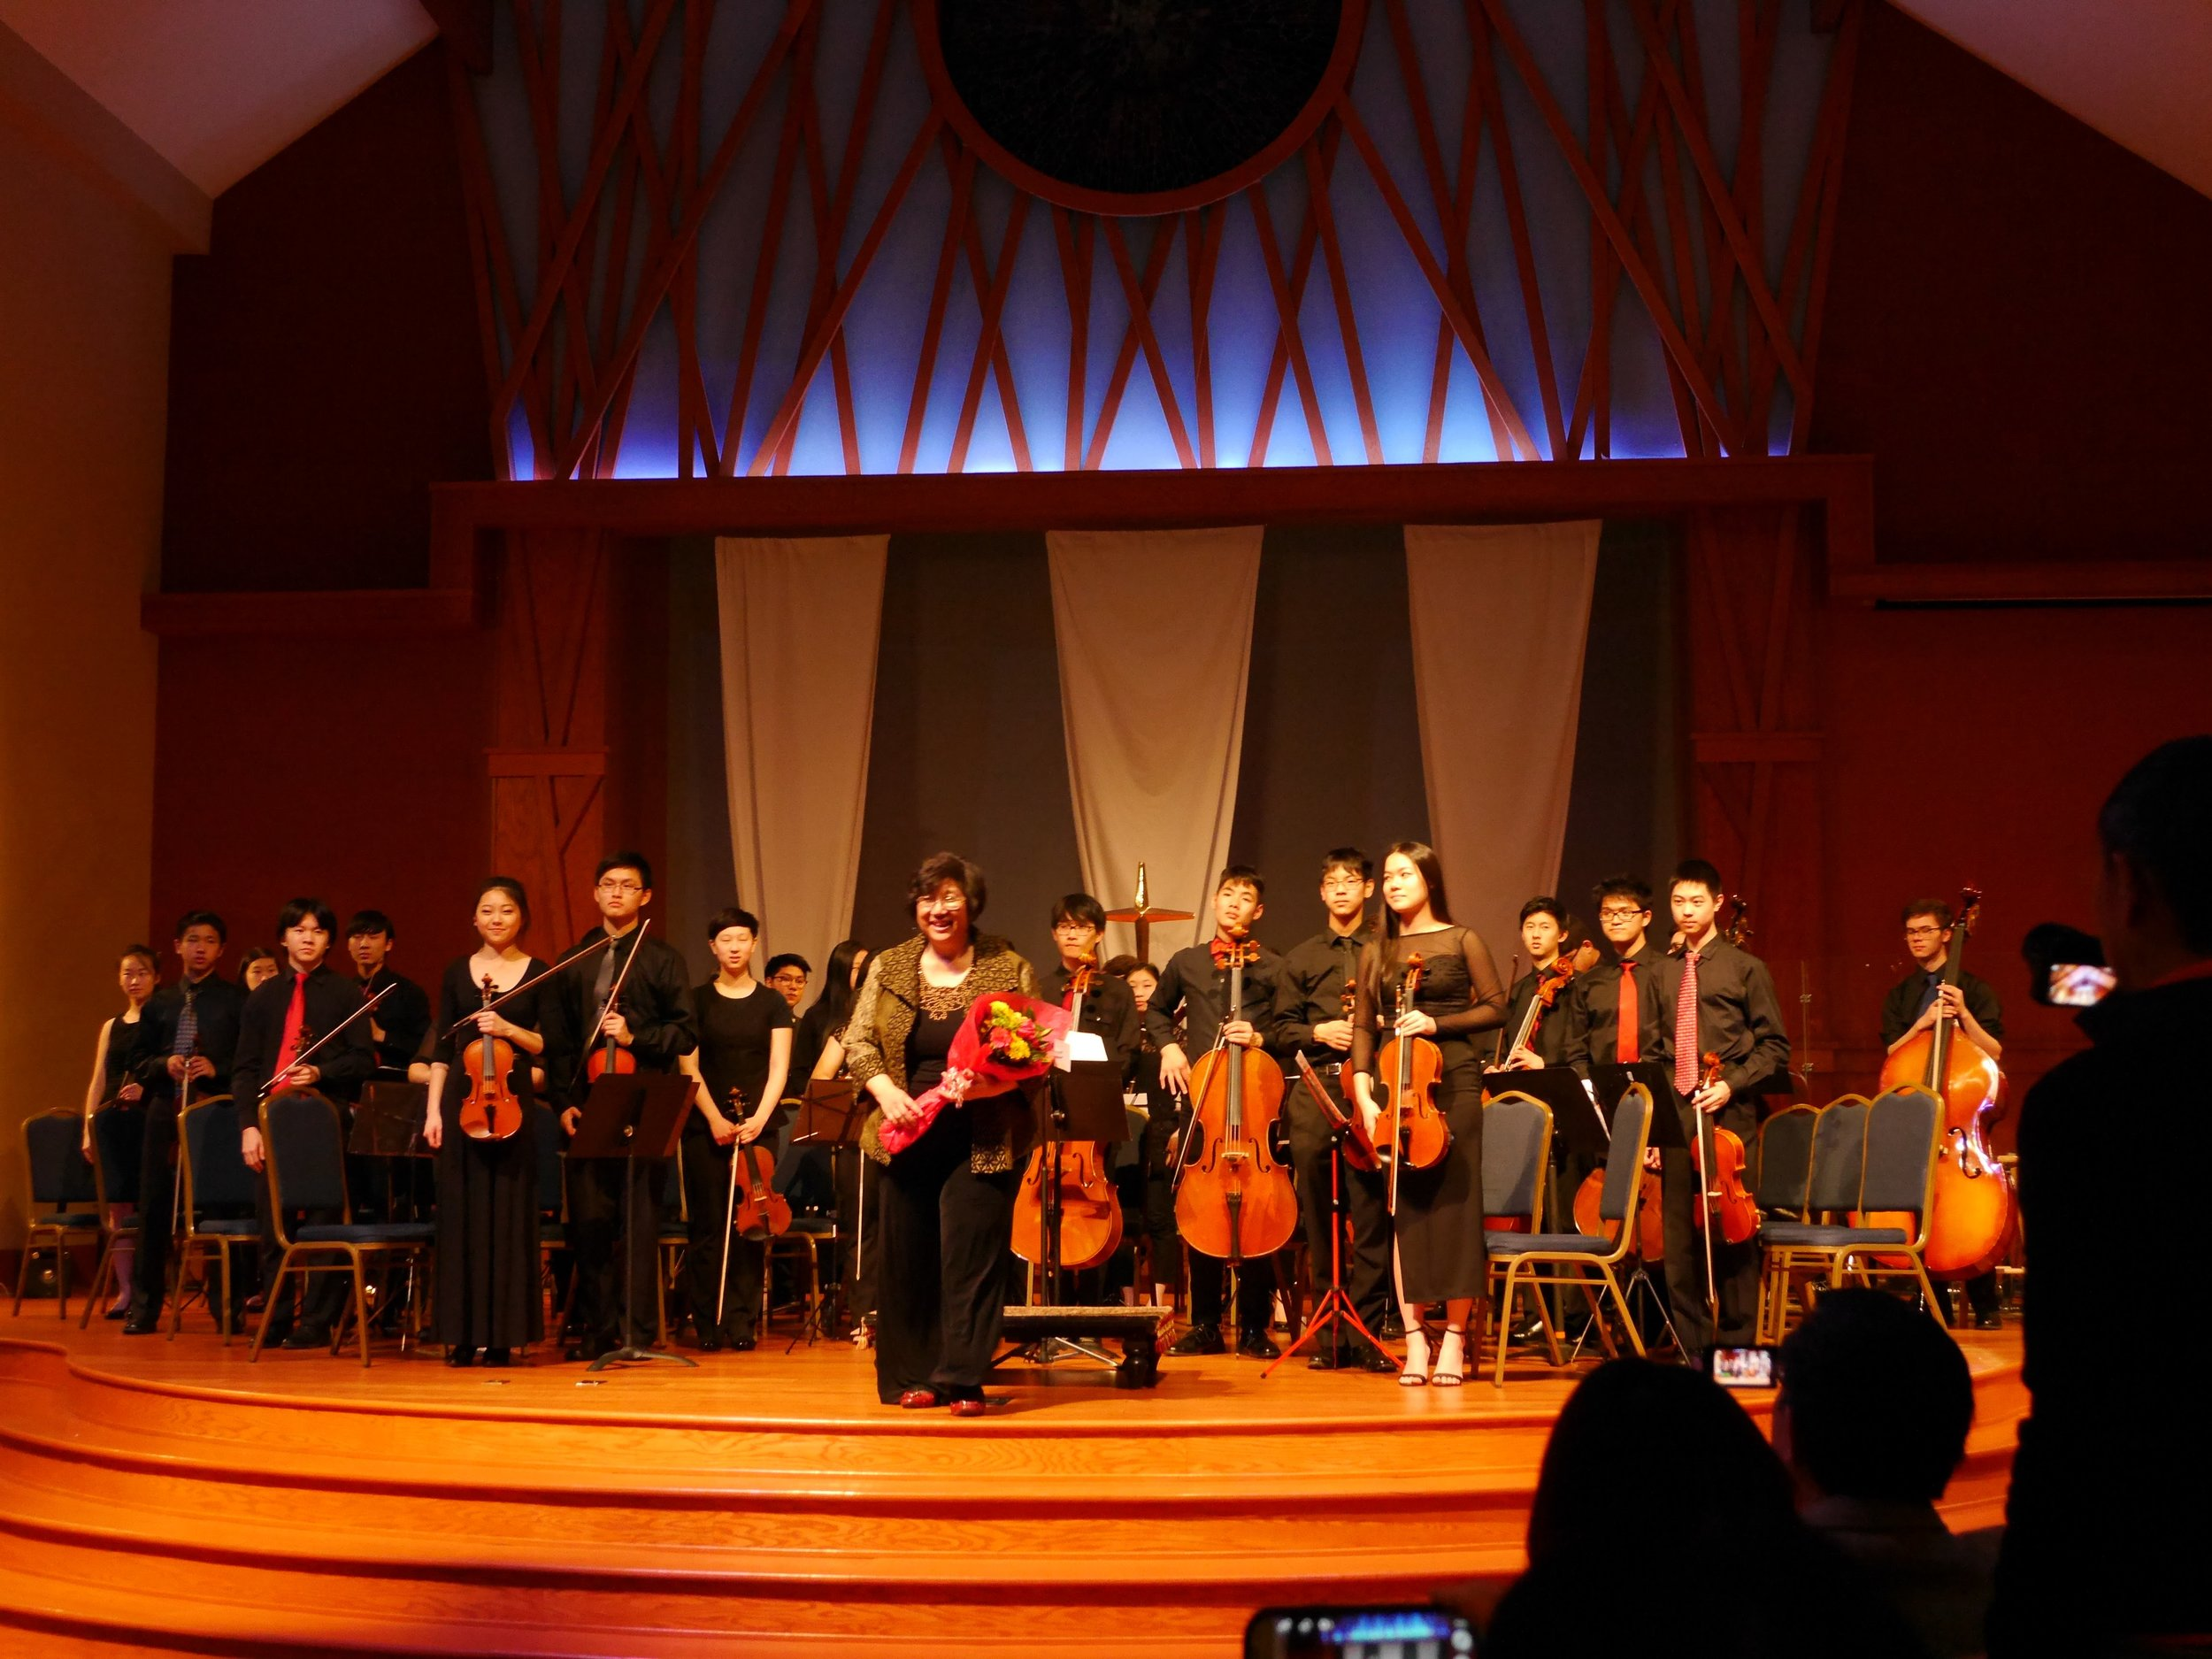 The final curtain call for the Sinfonia